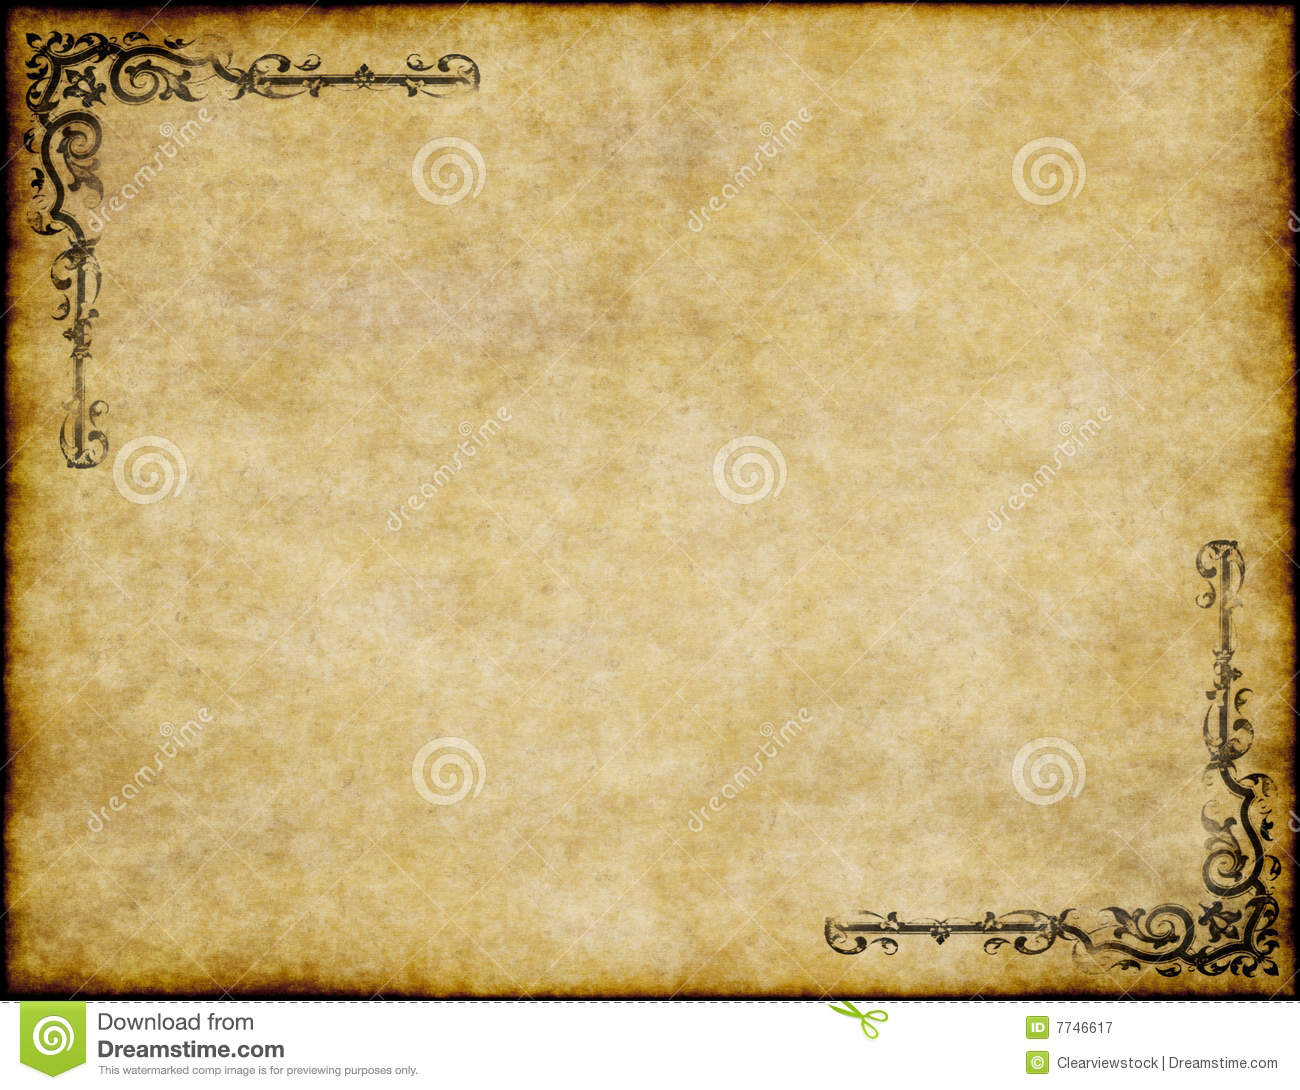 Old parchment paper texture royalty free stock photography image